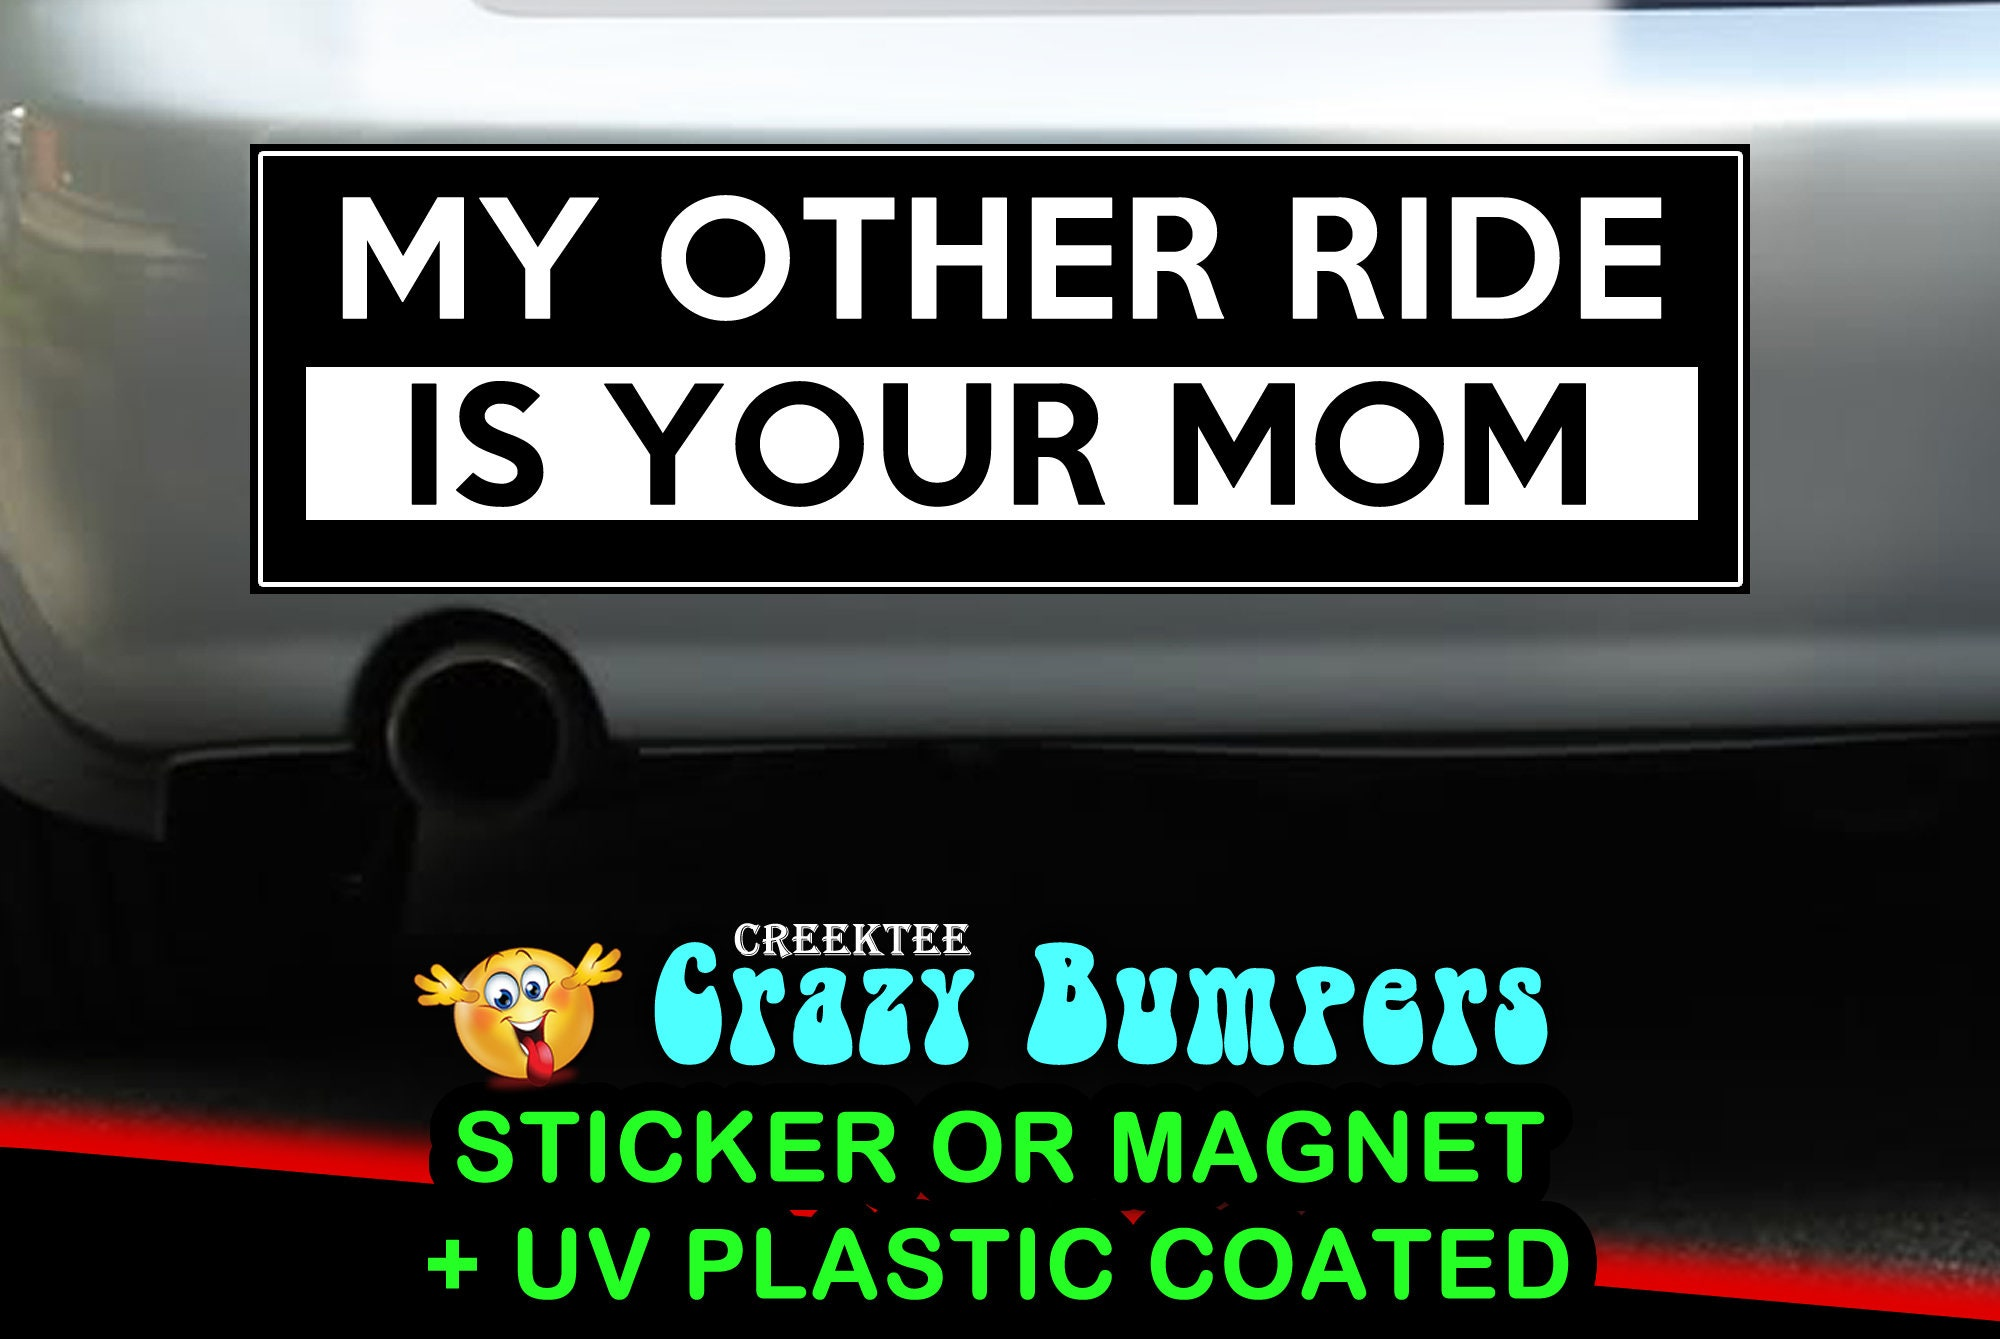 $9.74 - My Other Ride Is Your Mom 10 x 3 Bumper Sticker or Magnetic Bumper Sticker Available